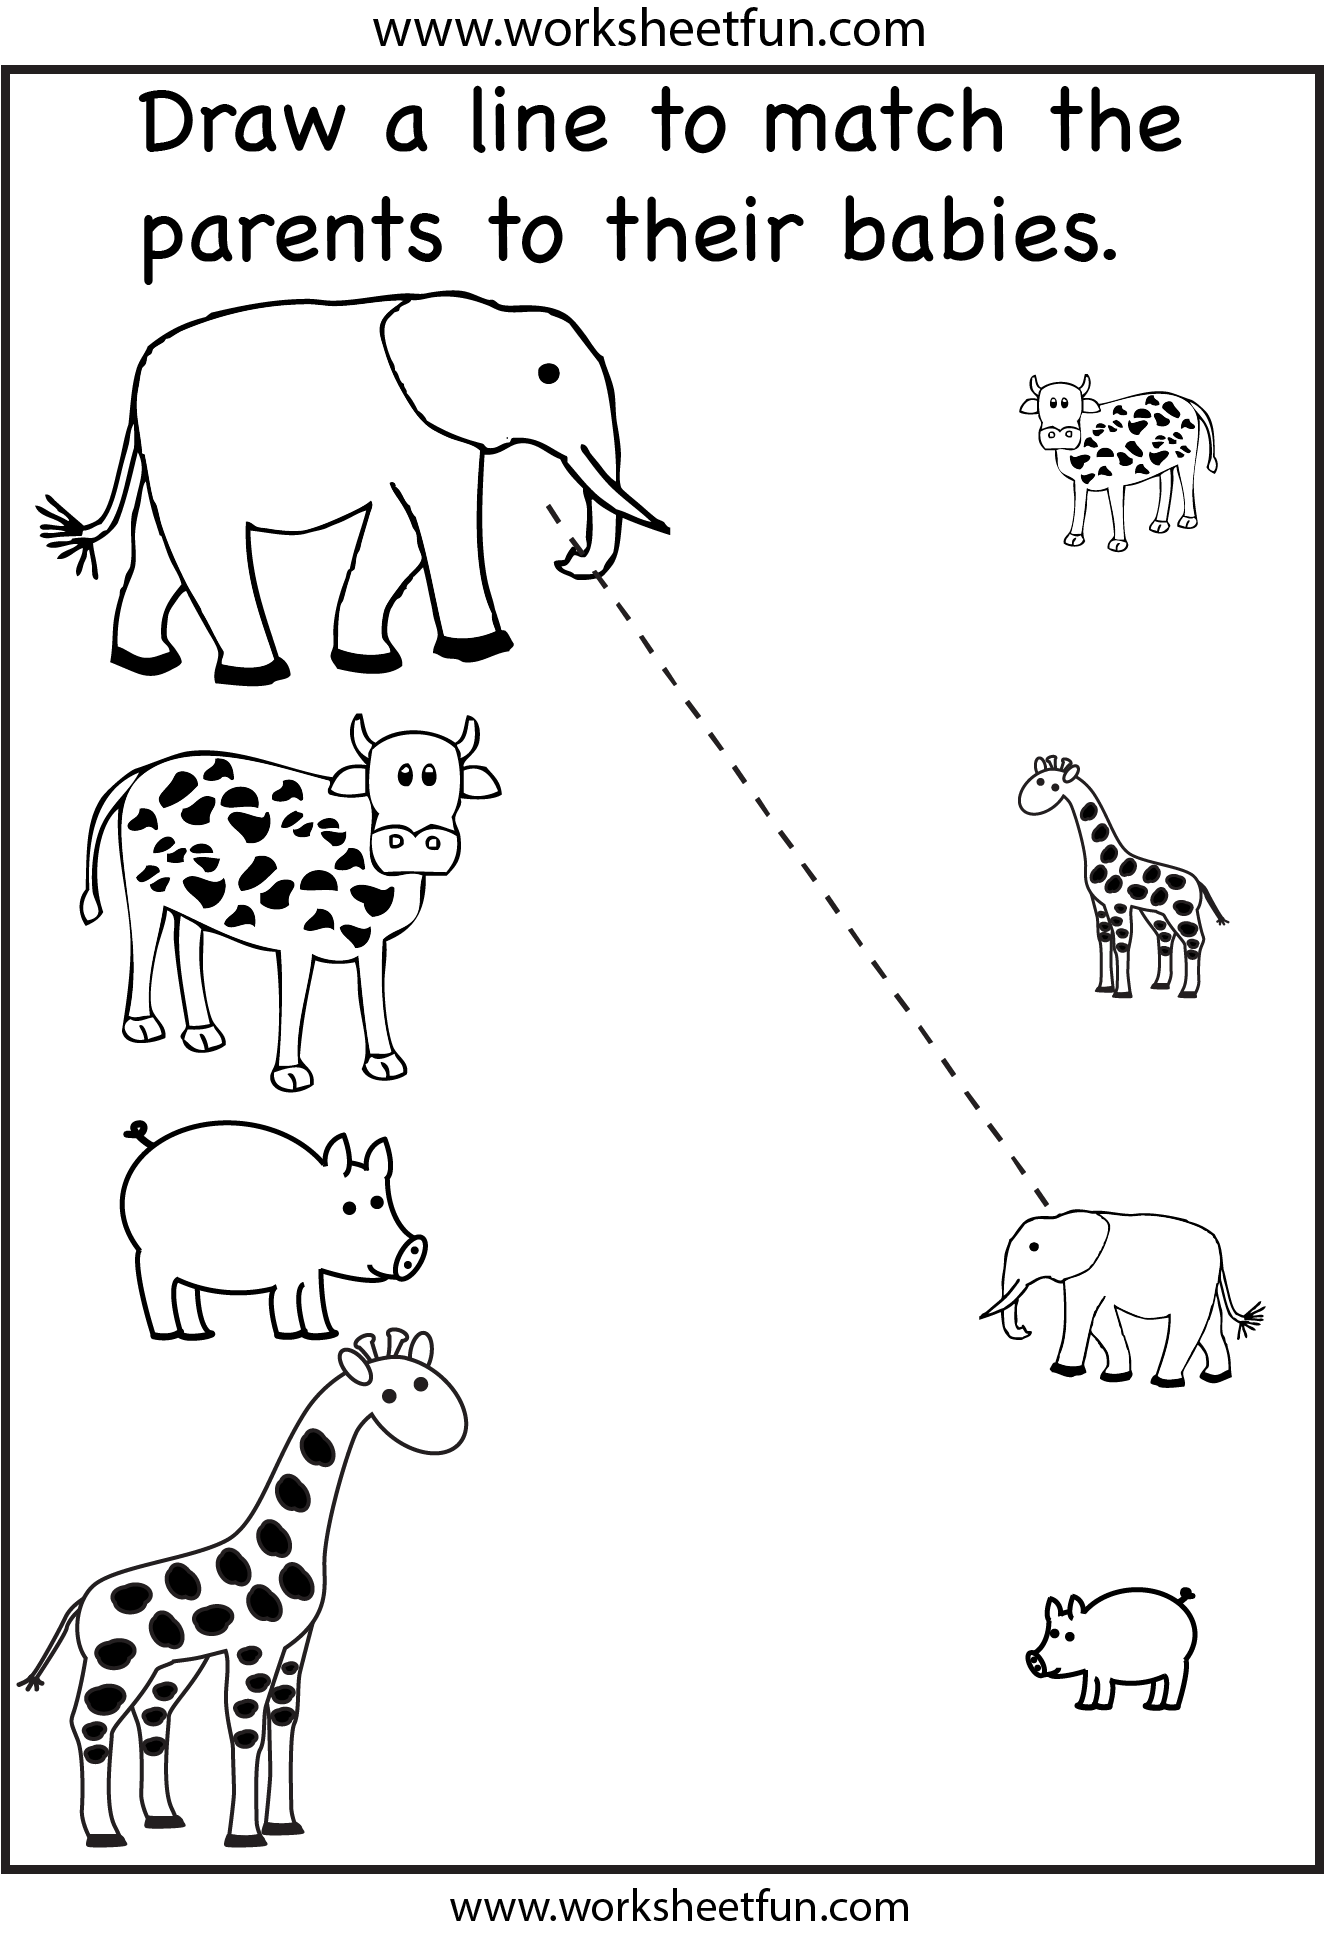 worksheet Homes Of Animals Worksheets For Kids preschool worksheets maternelle pinterest craftsactvities and for preschooltoddler kindergarten free printables activity pages lots